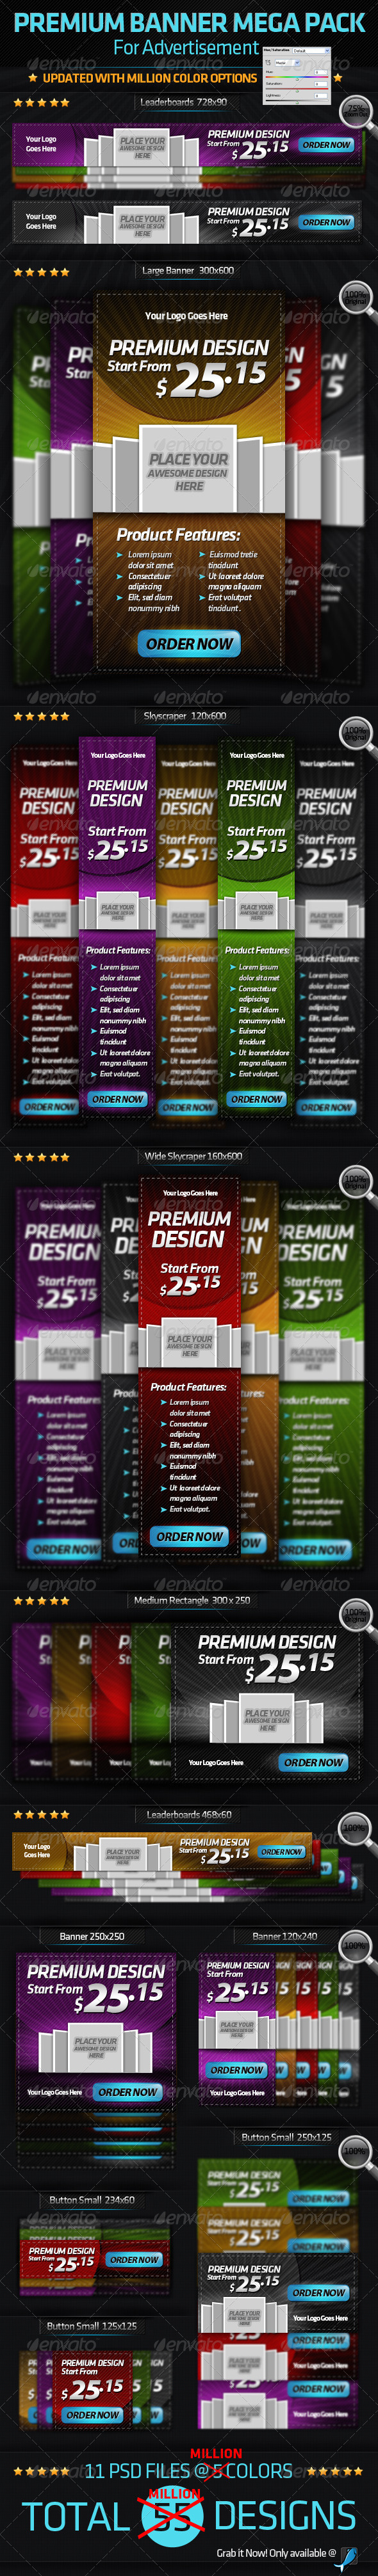 Premium Banner-Mega Pack-For Online Advertisement